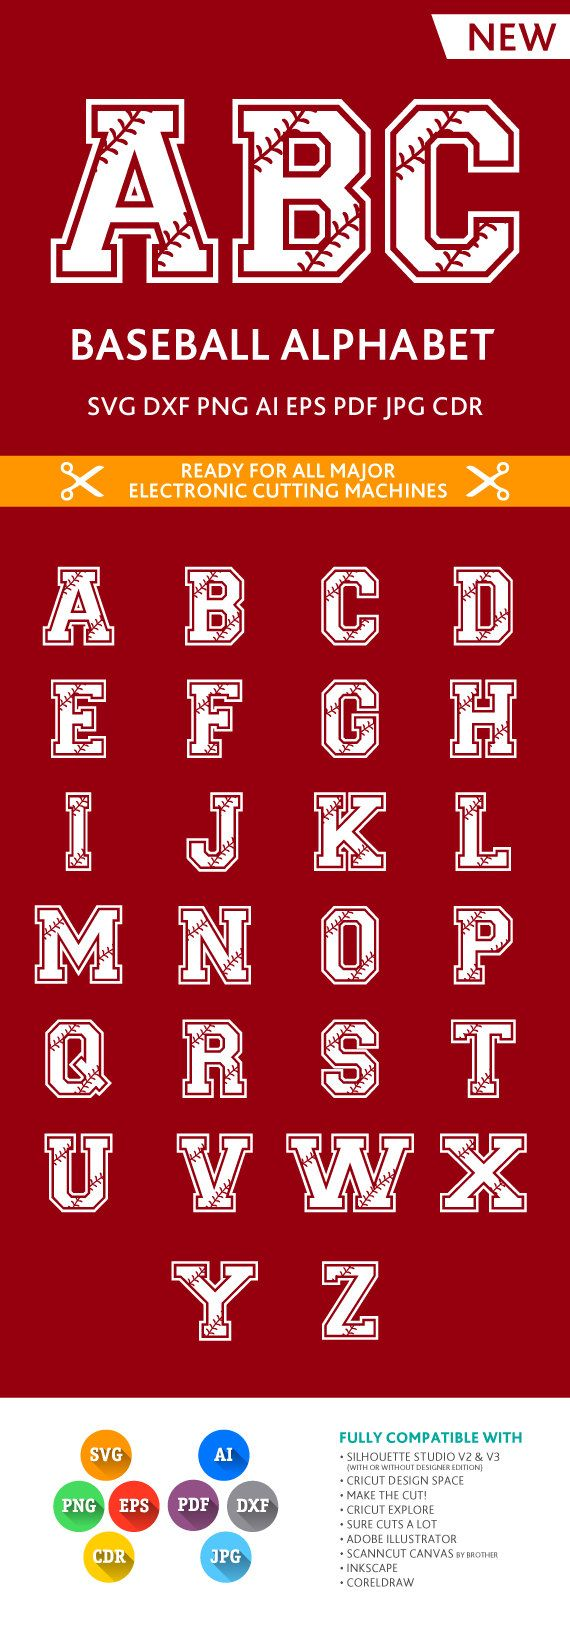 Softball / Baseball Letters SVG Stitches Alphabet Cut Files SVG DXF Eps Silhouette Studio Png Pdf Jpg Ai Cdr Silhouette Studio Cricut Cameo